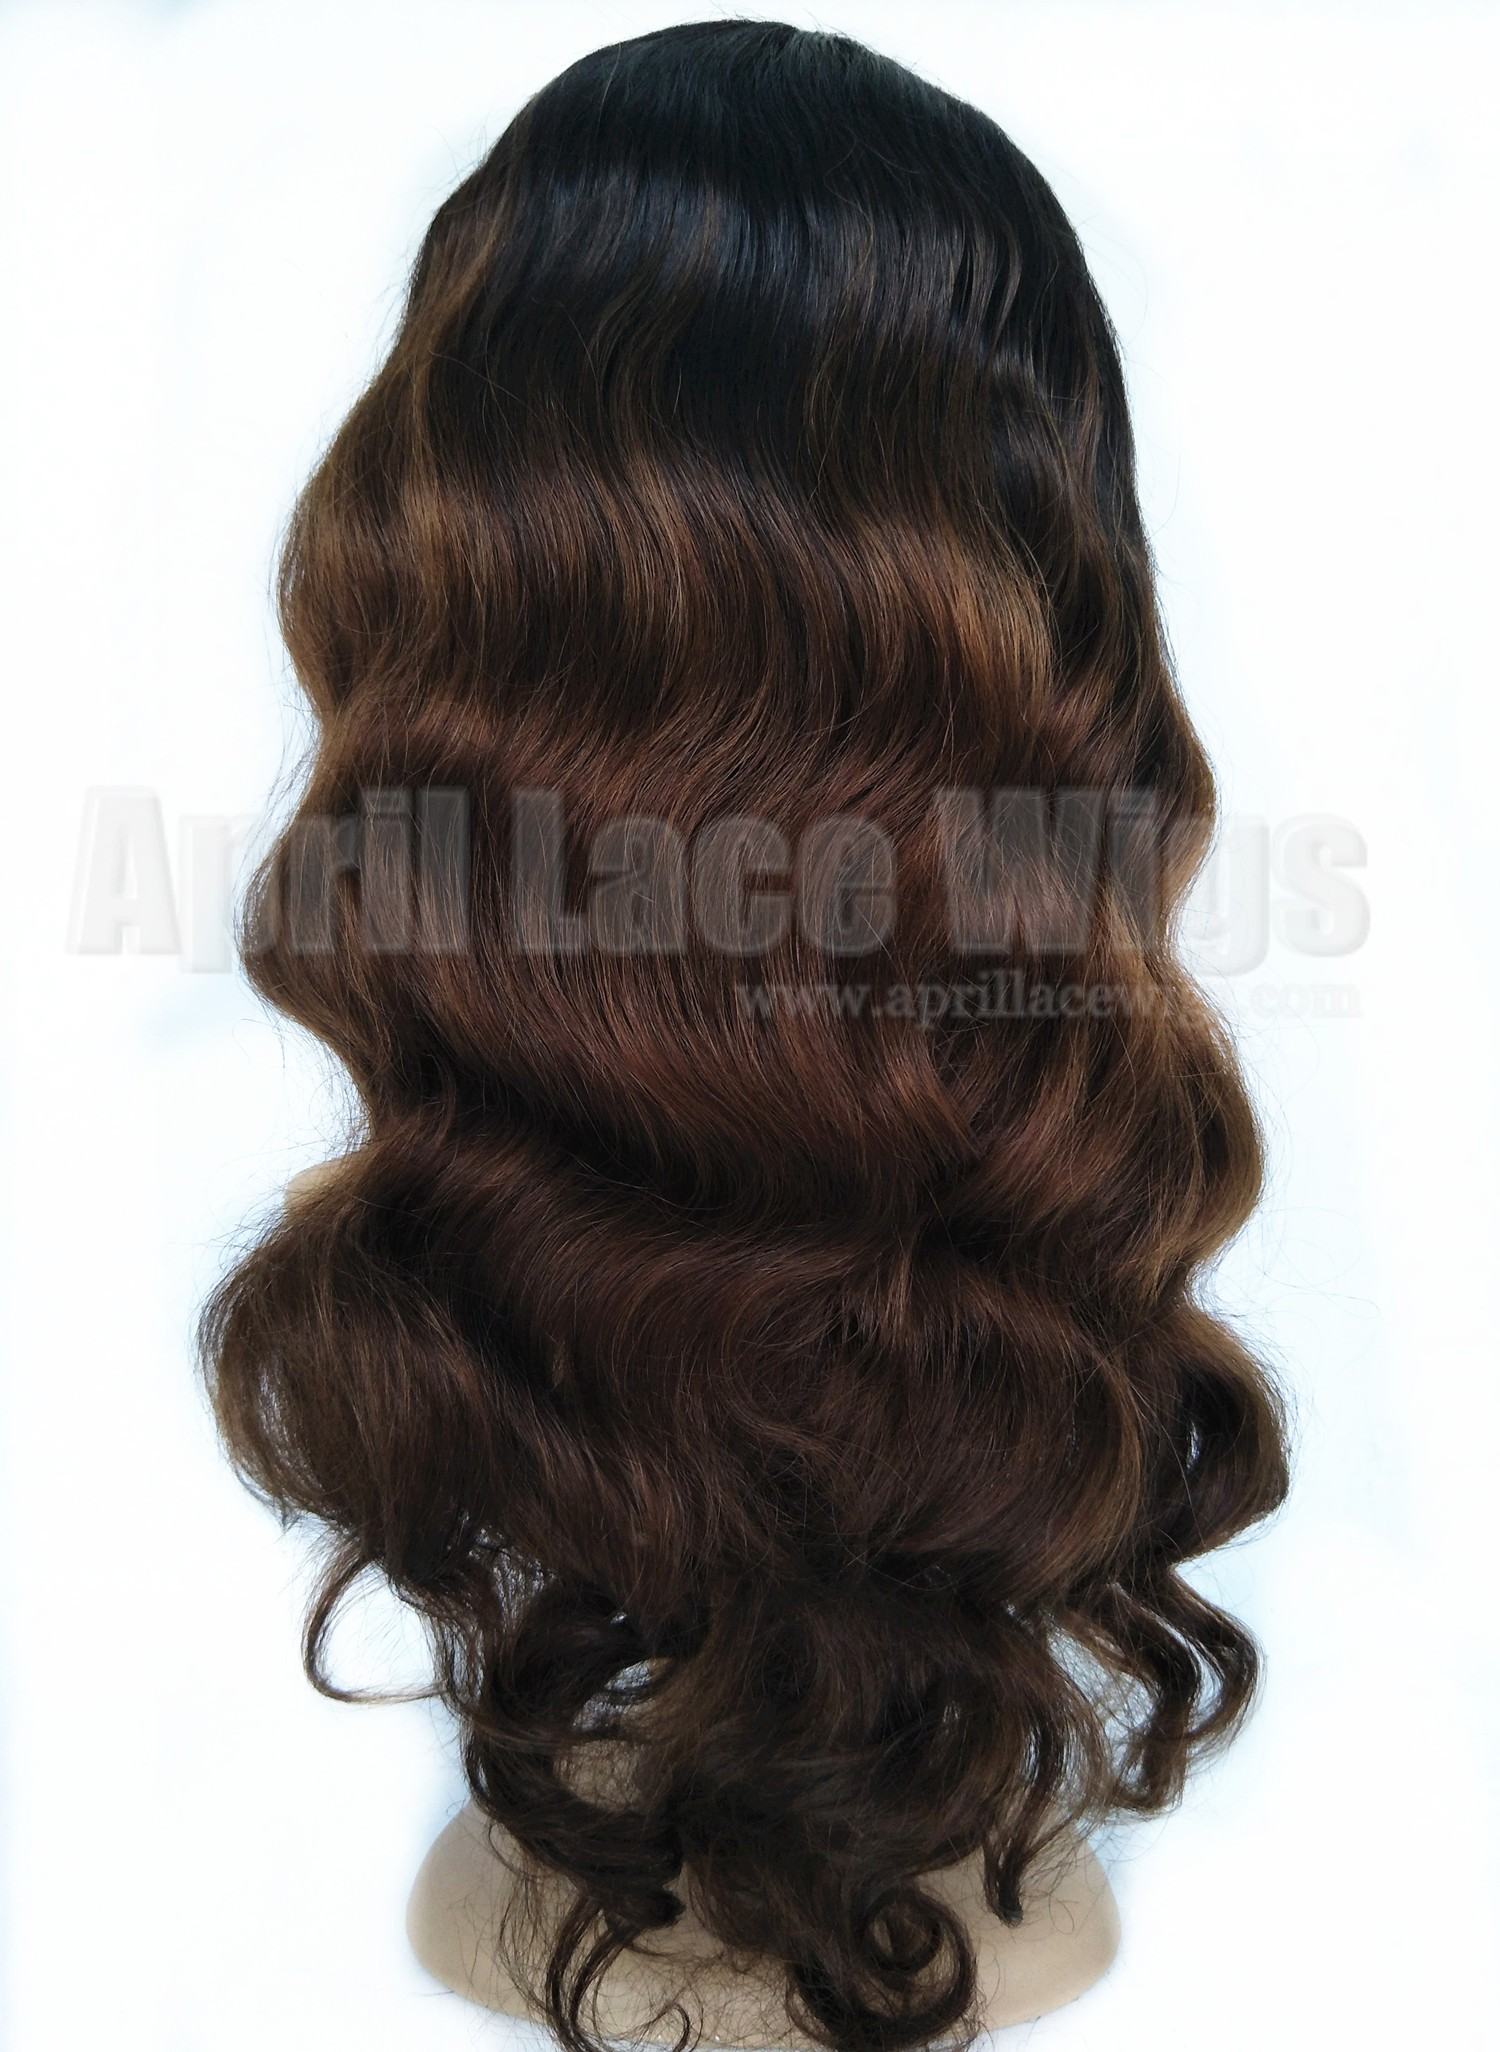 virgin hair Ombre Color glueless full lace wig with 2x4 silk top wig